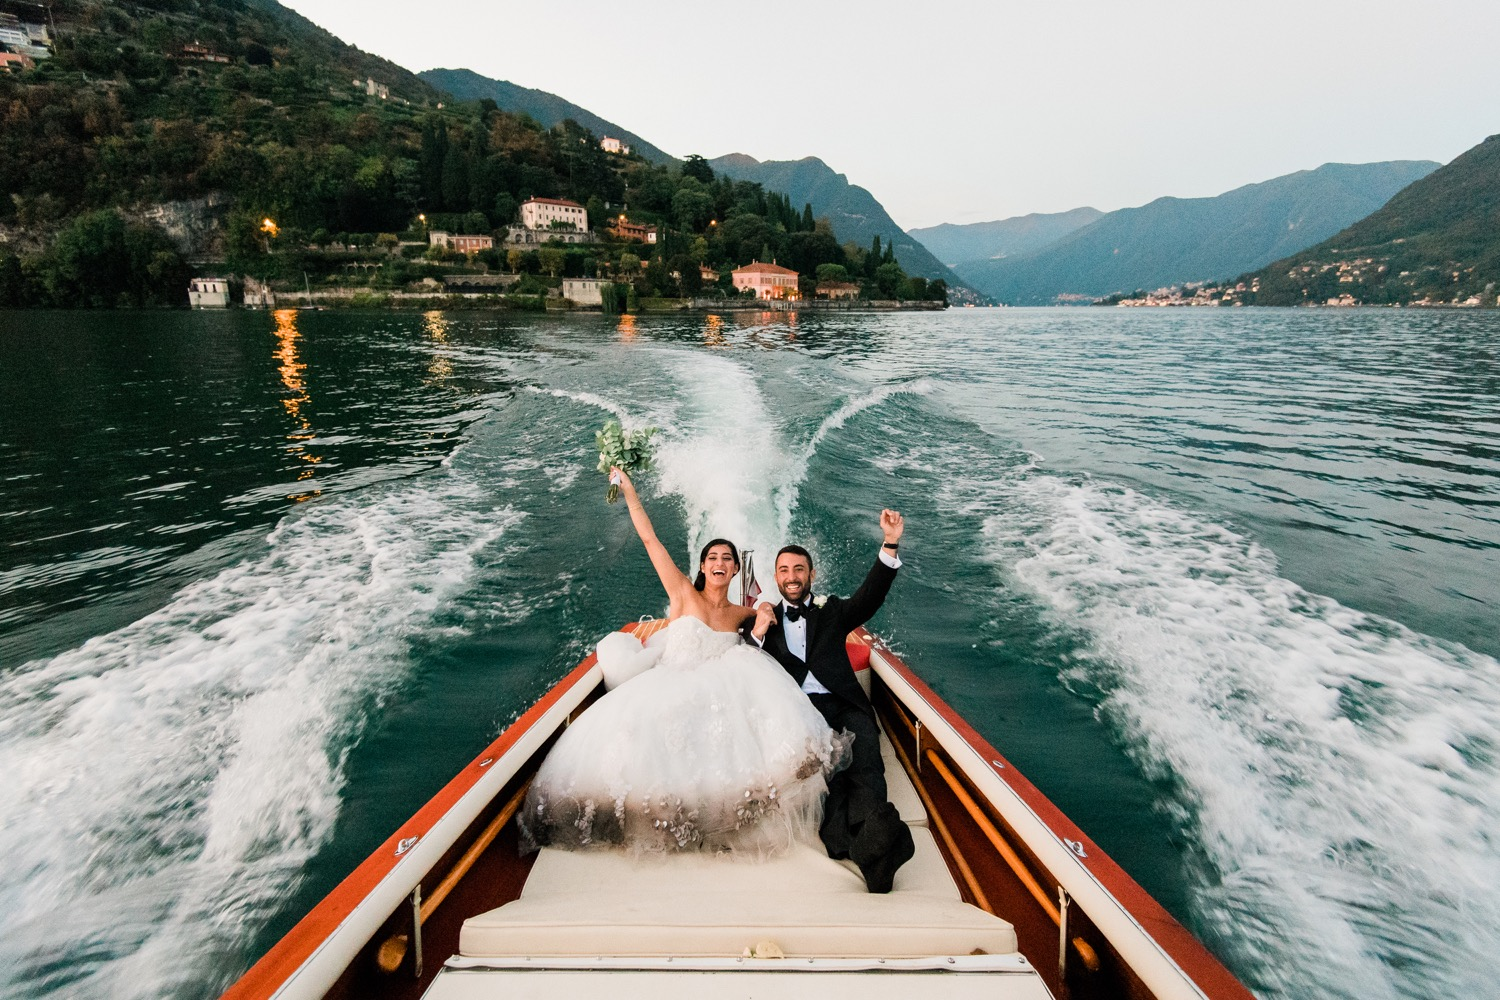 S_J-Slide-167_lake_Como_wedding_photography_mait_J¸riado_mj_boatride_studios_villa_pizzo_Italy_destination_villapizzo